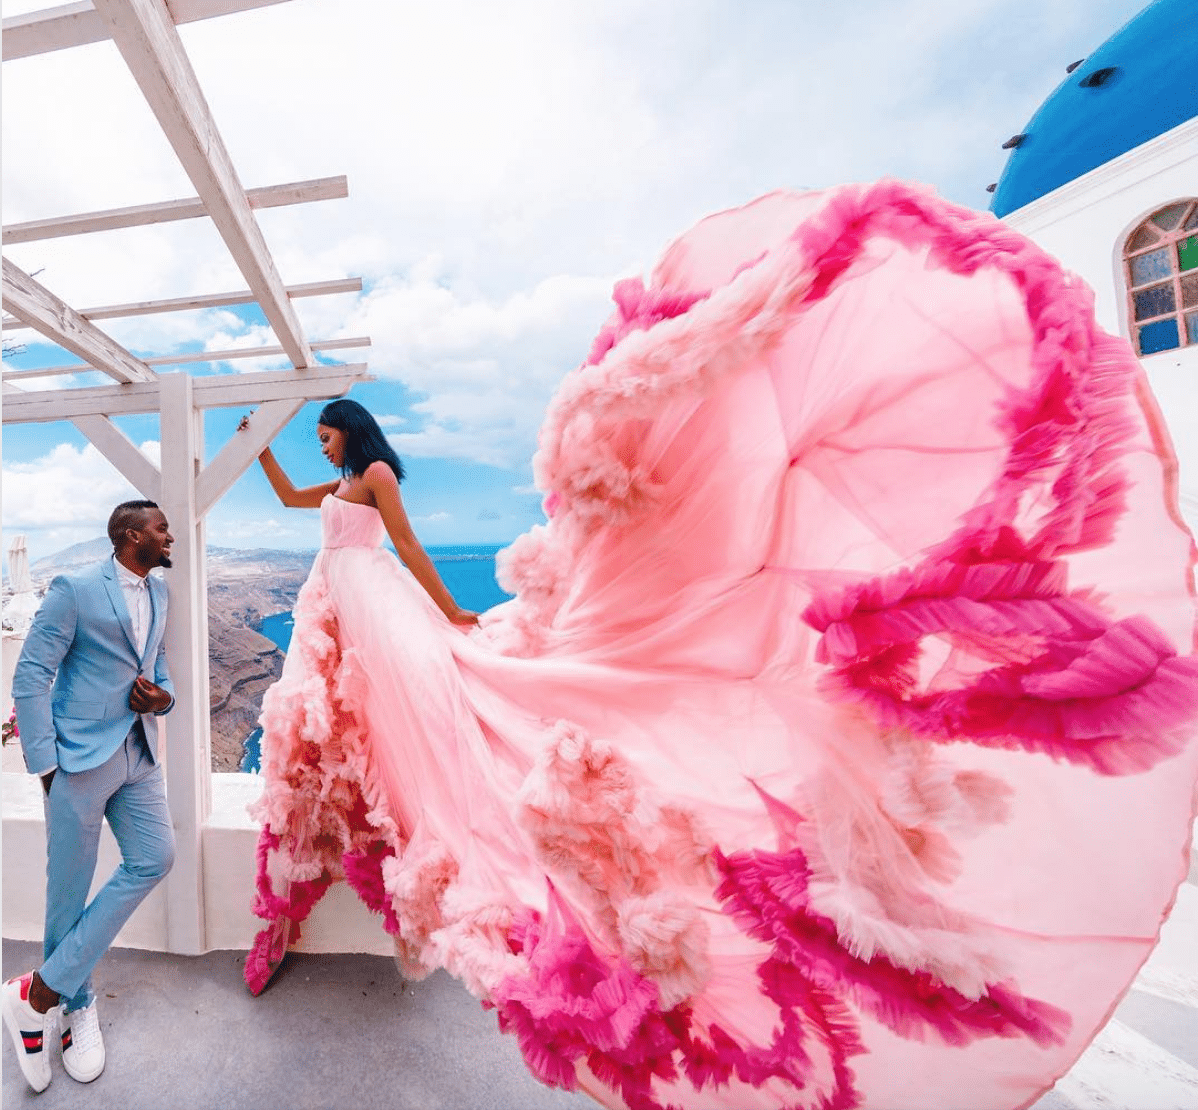 12 Couples That Took Their Love Global on Instagram in 2018